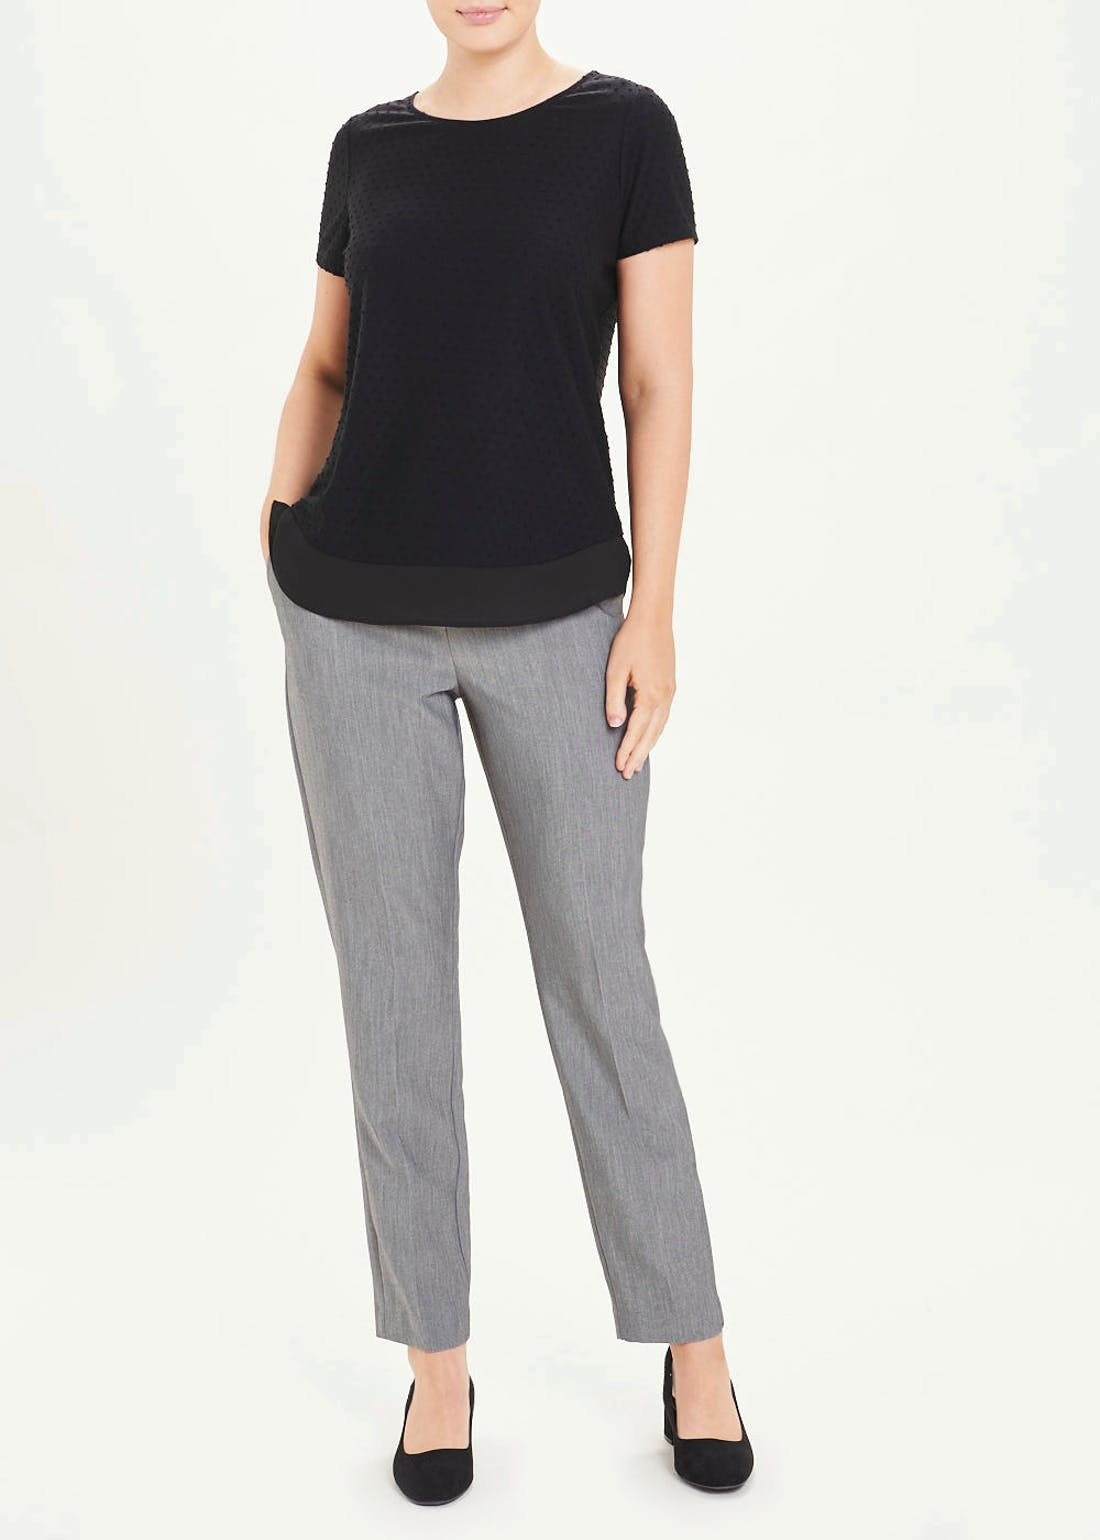 Tapered Suit Trousers (31 Inch Leg)